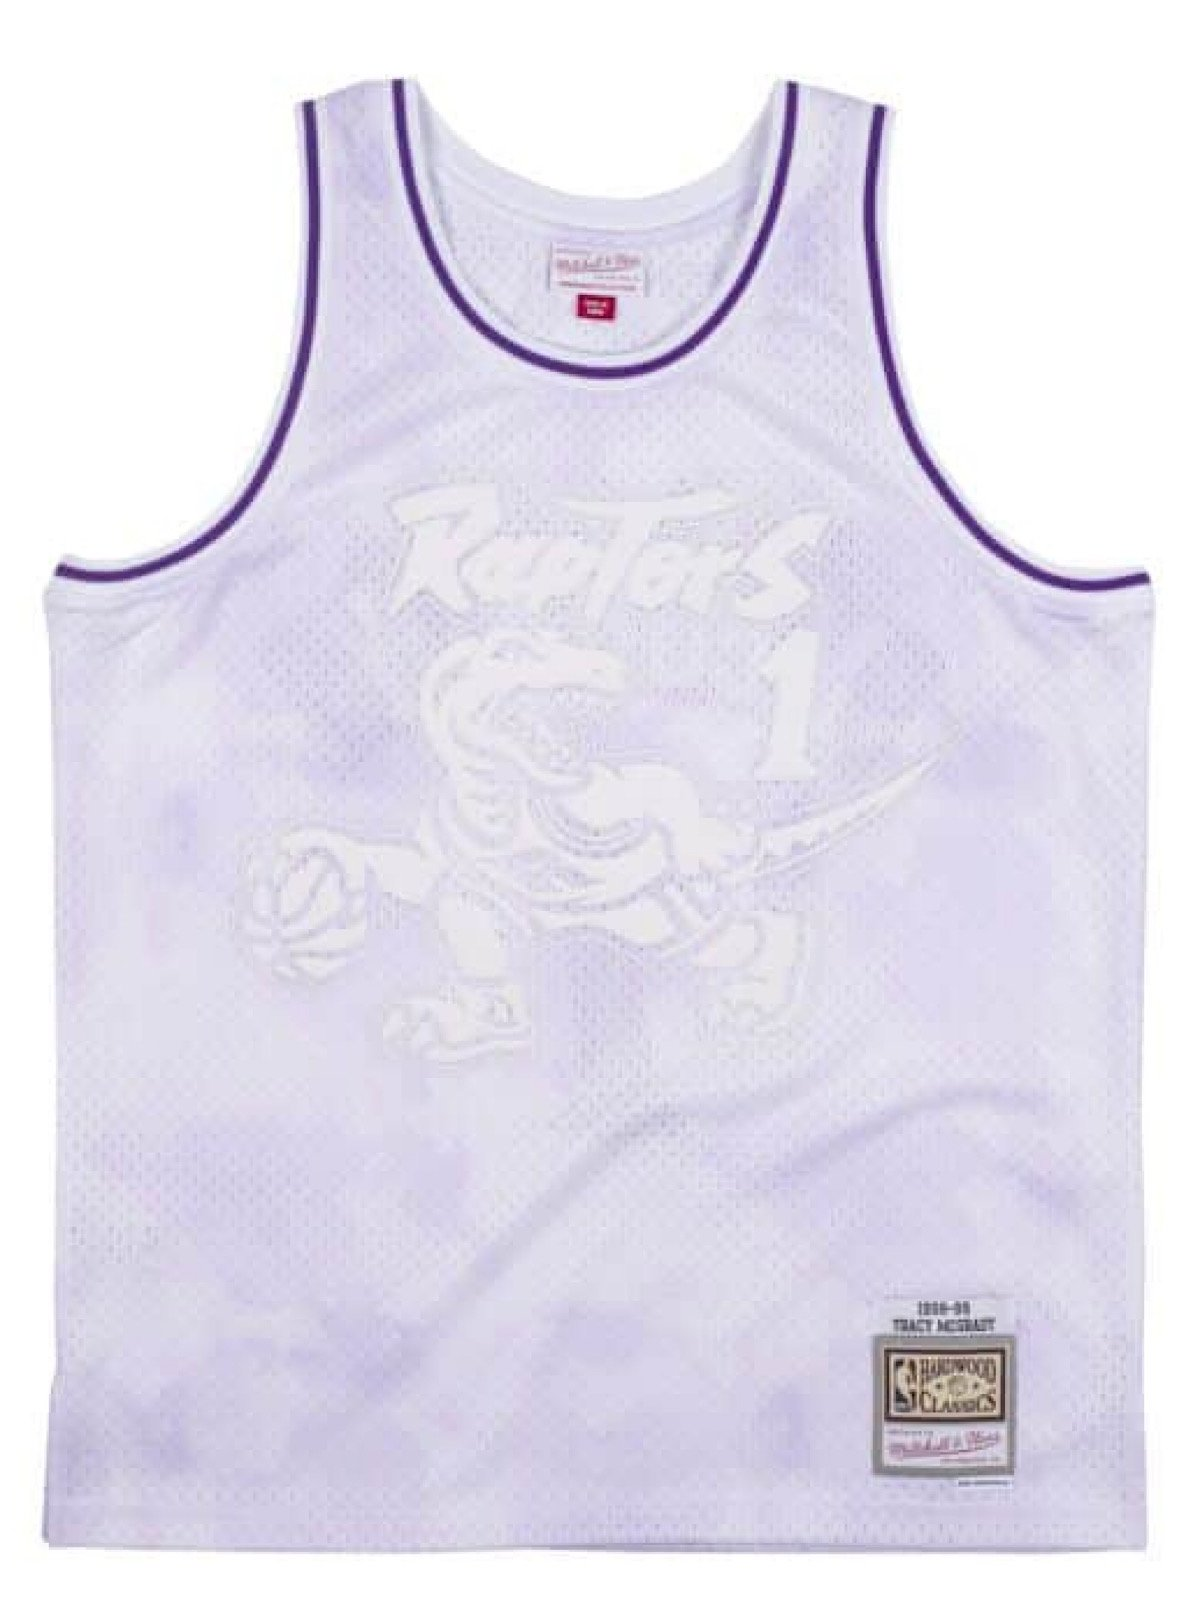 Mitchell & Ness Jersey - Raptors 98 - Cloudy Skies Lavender